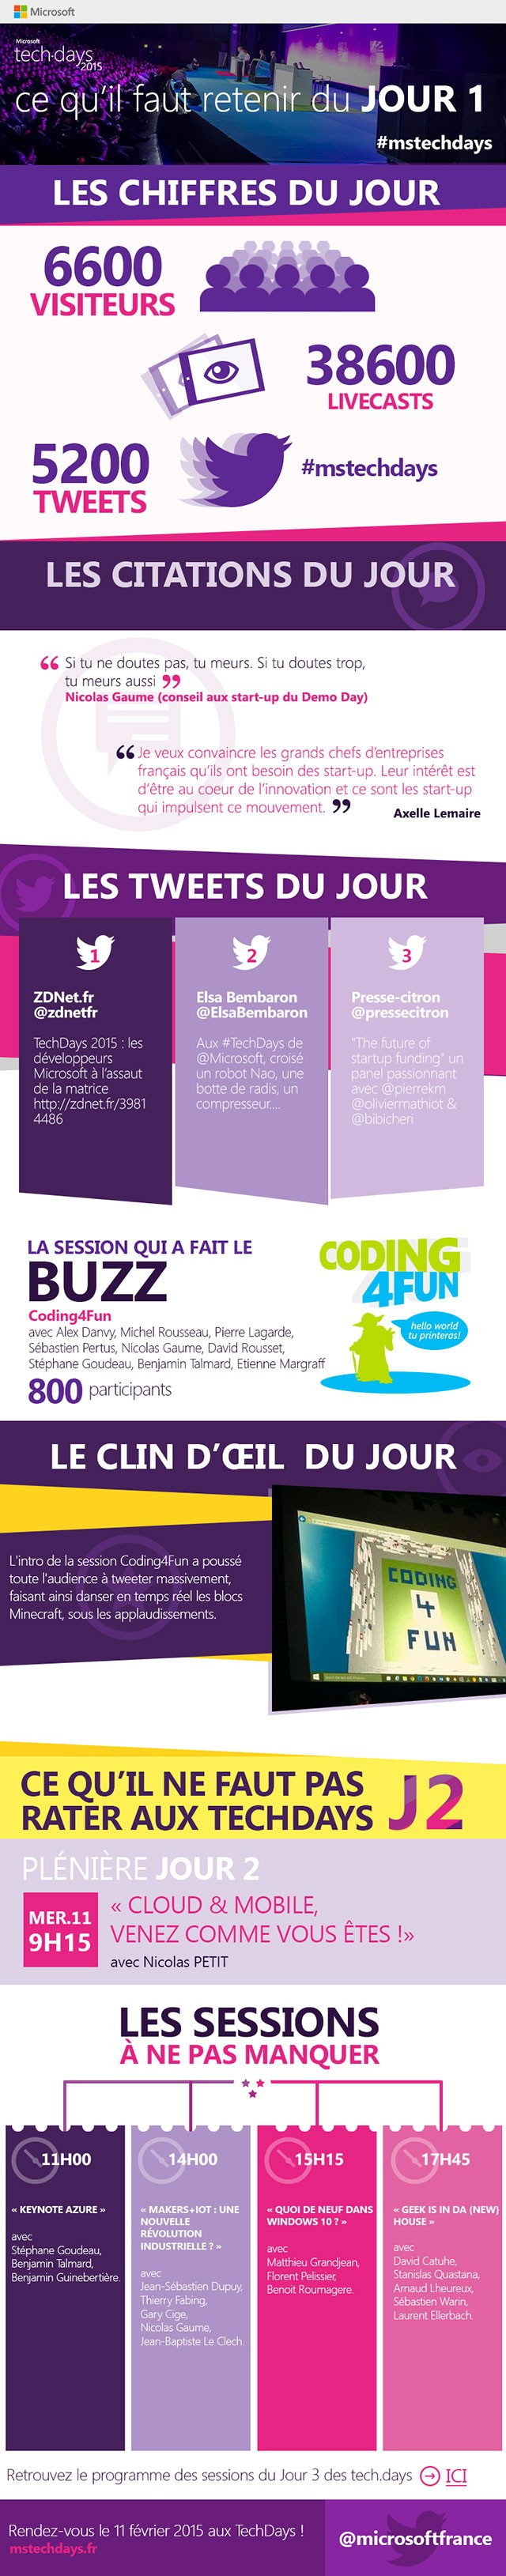 Infographie TechDays jour 1